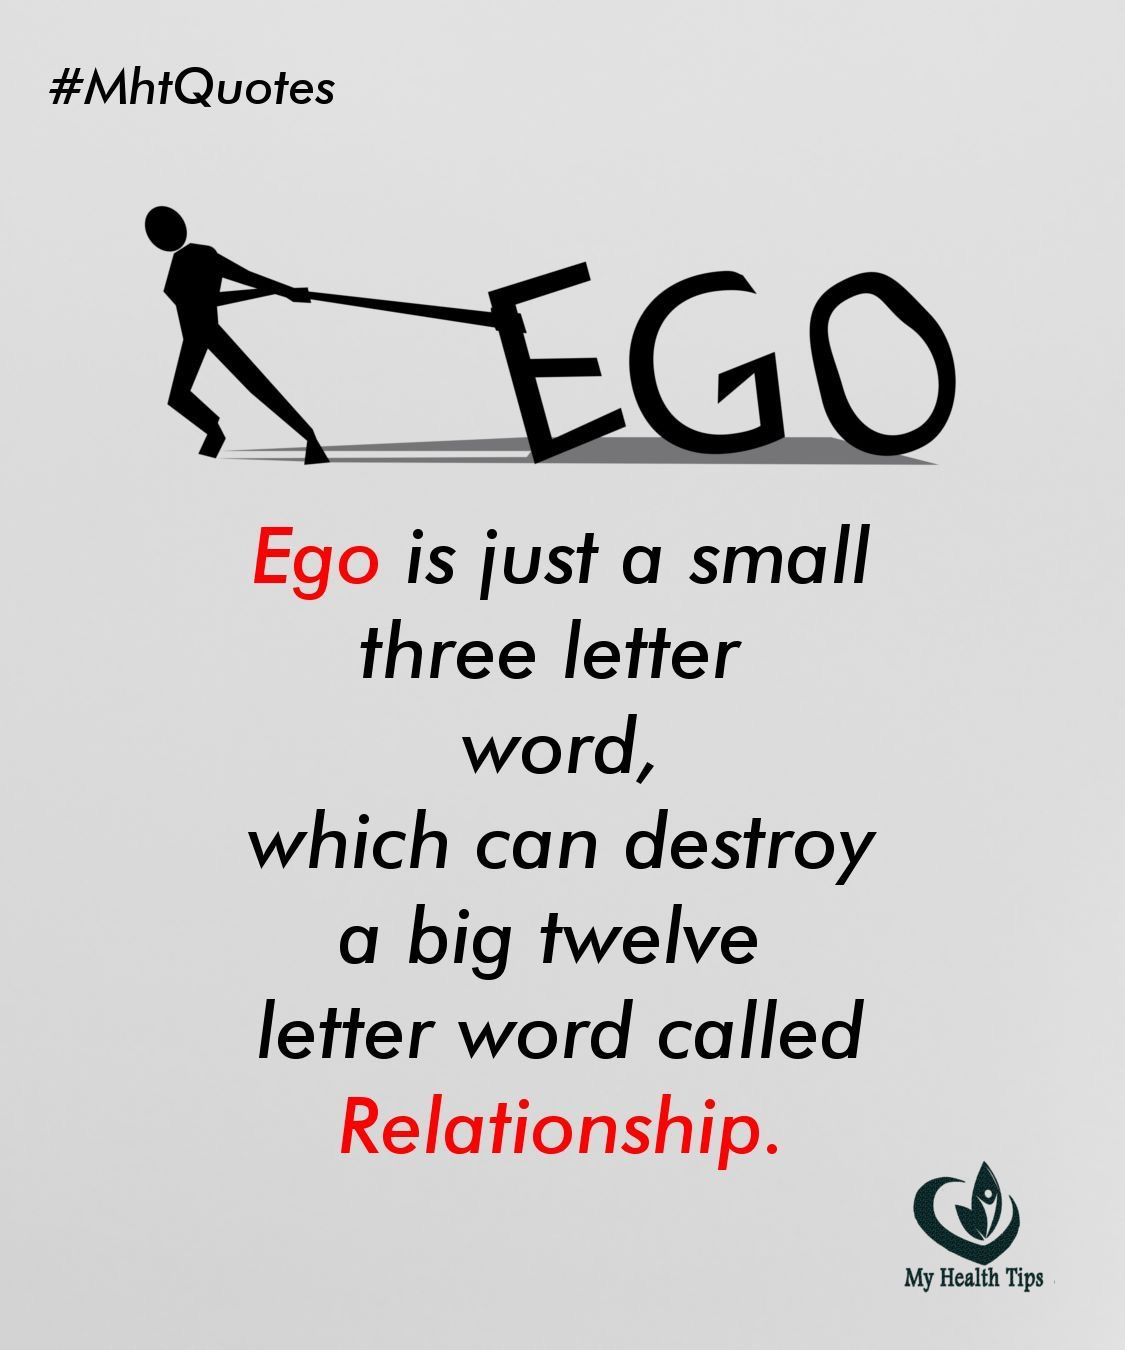 Pin By Manisha On Relationshiptrust Love Life Quotes Pinterest